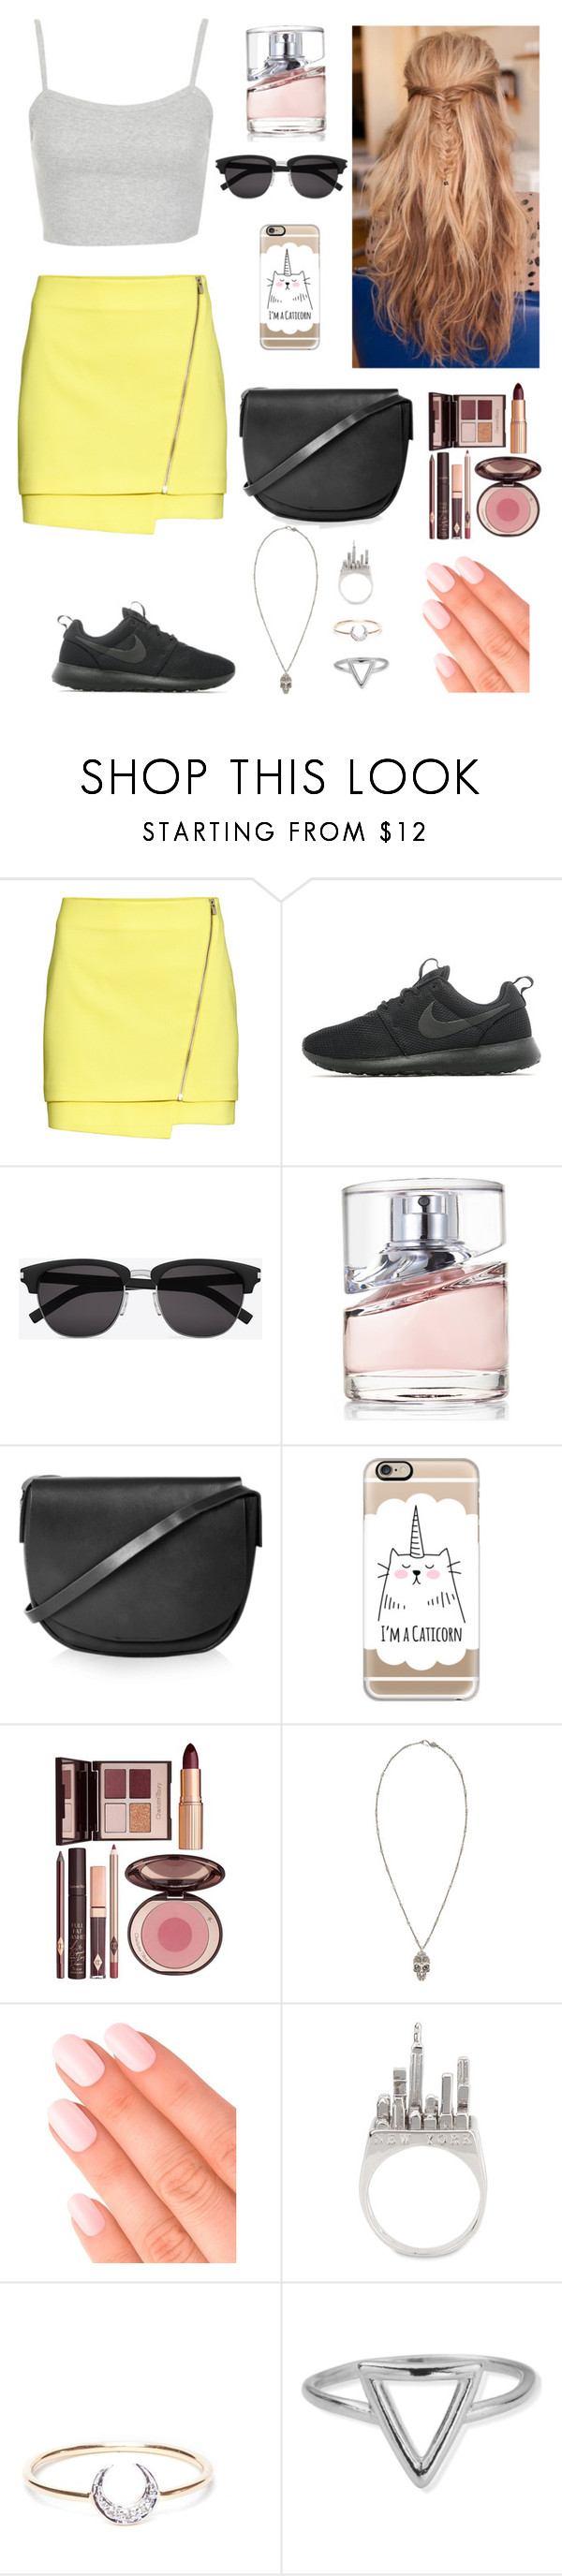 """""""Untitled #338"""" by e-ema ❤ liked on Polyvore featuring H&M, Topshop, NIKE, Yves Saint Laurent, BOSS Hugo Boss, Casetify, Charlotte Tilbury, Alexander McQueen, Elegant Touch and Anello"""